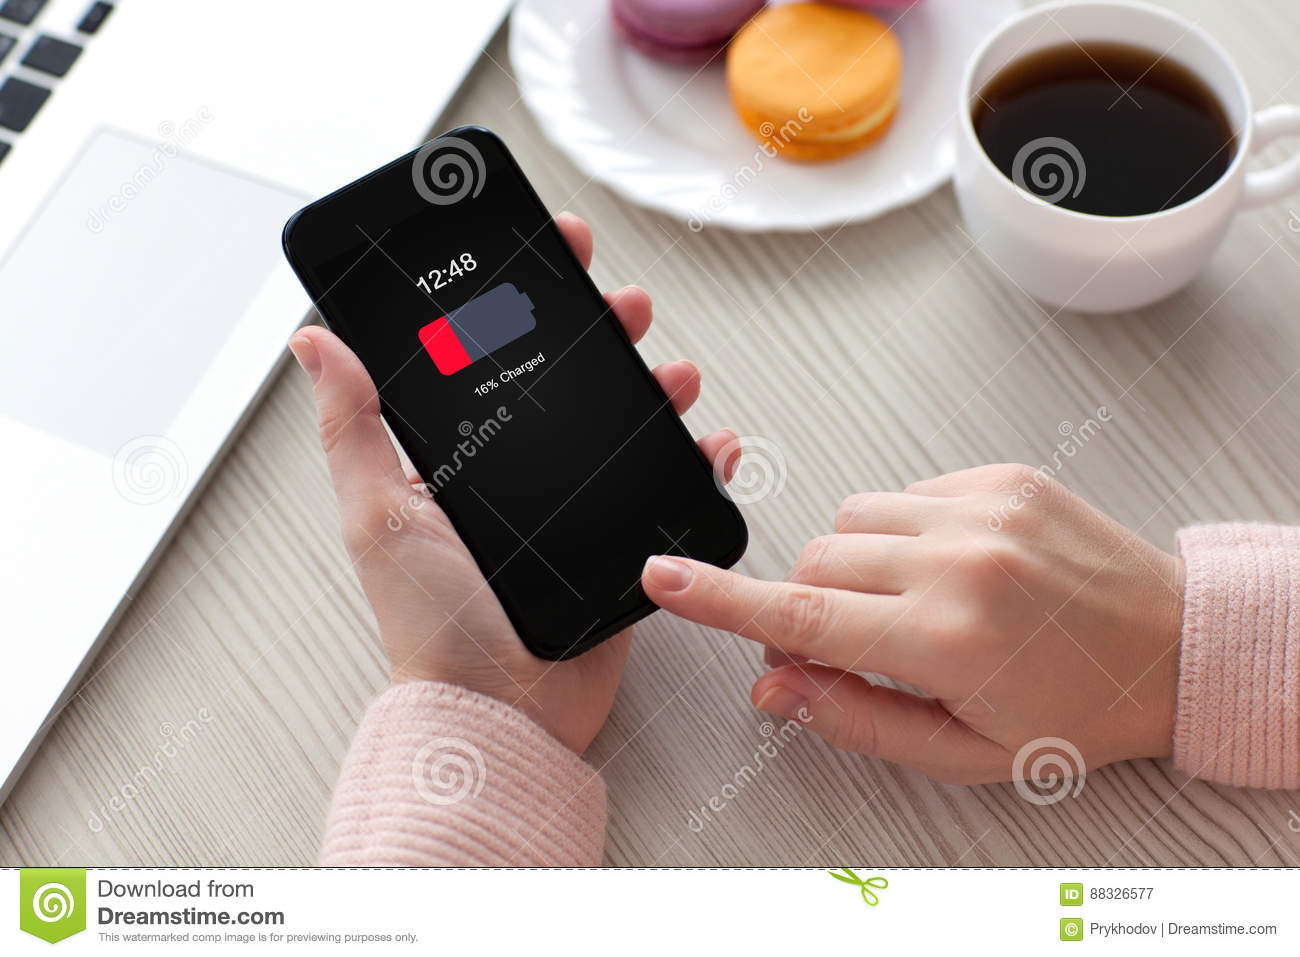 Women hands holding phone with low charged battery screen